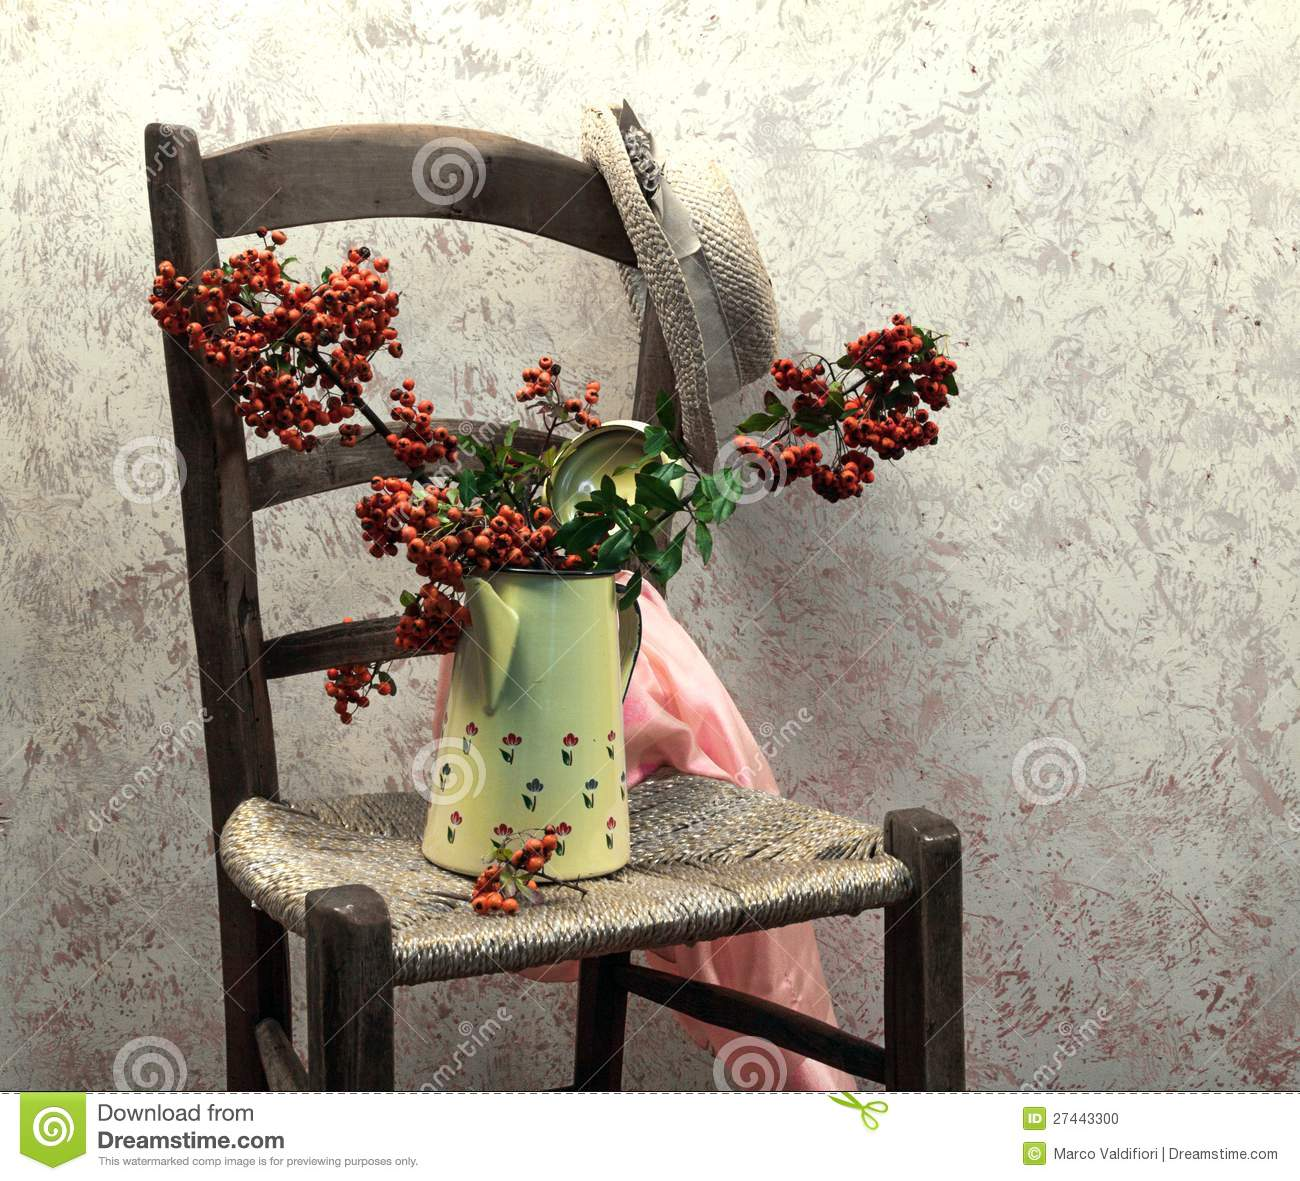 Still Life With Wood Chair Stock Photo - Image: 27443300